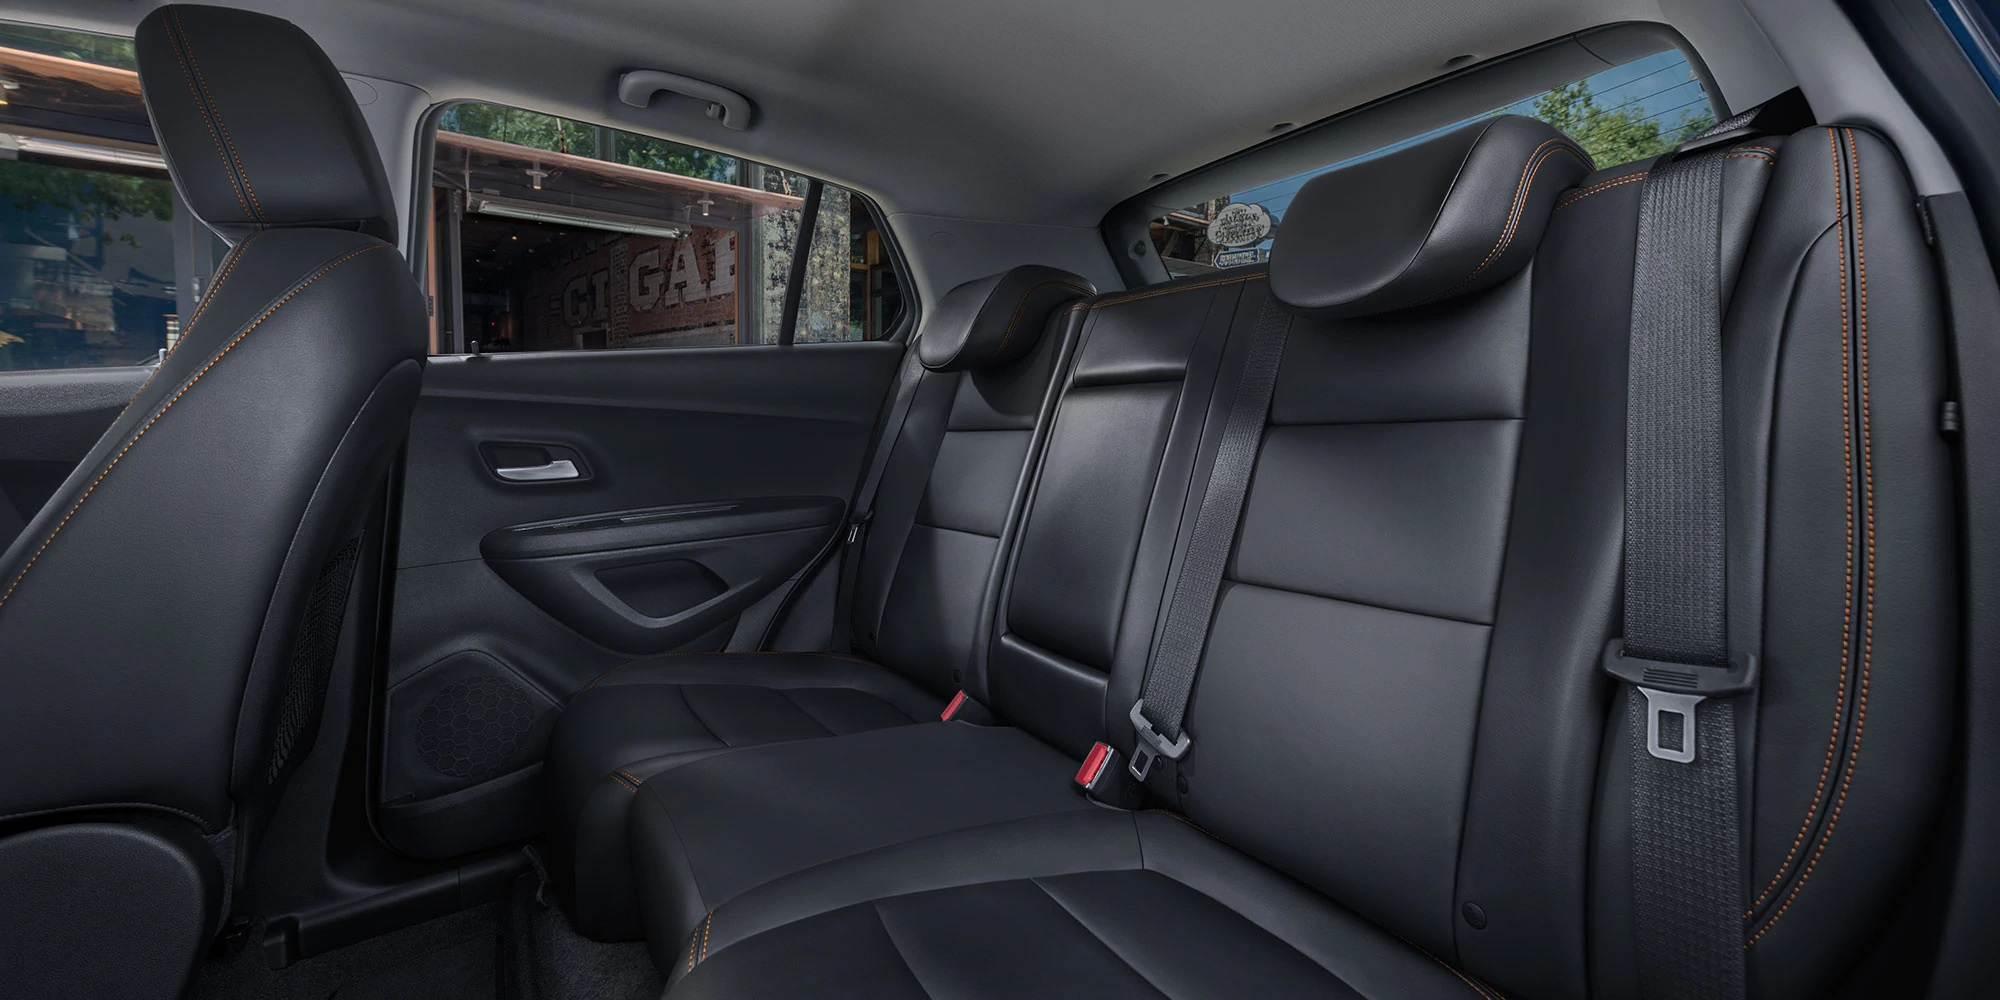 2020 Chevrolet Trax Seating